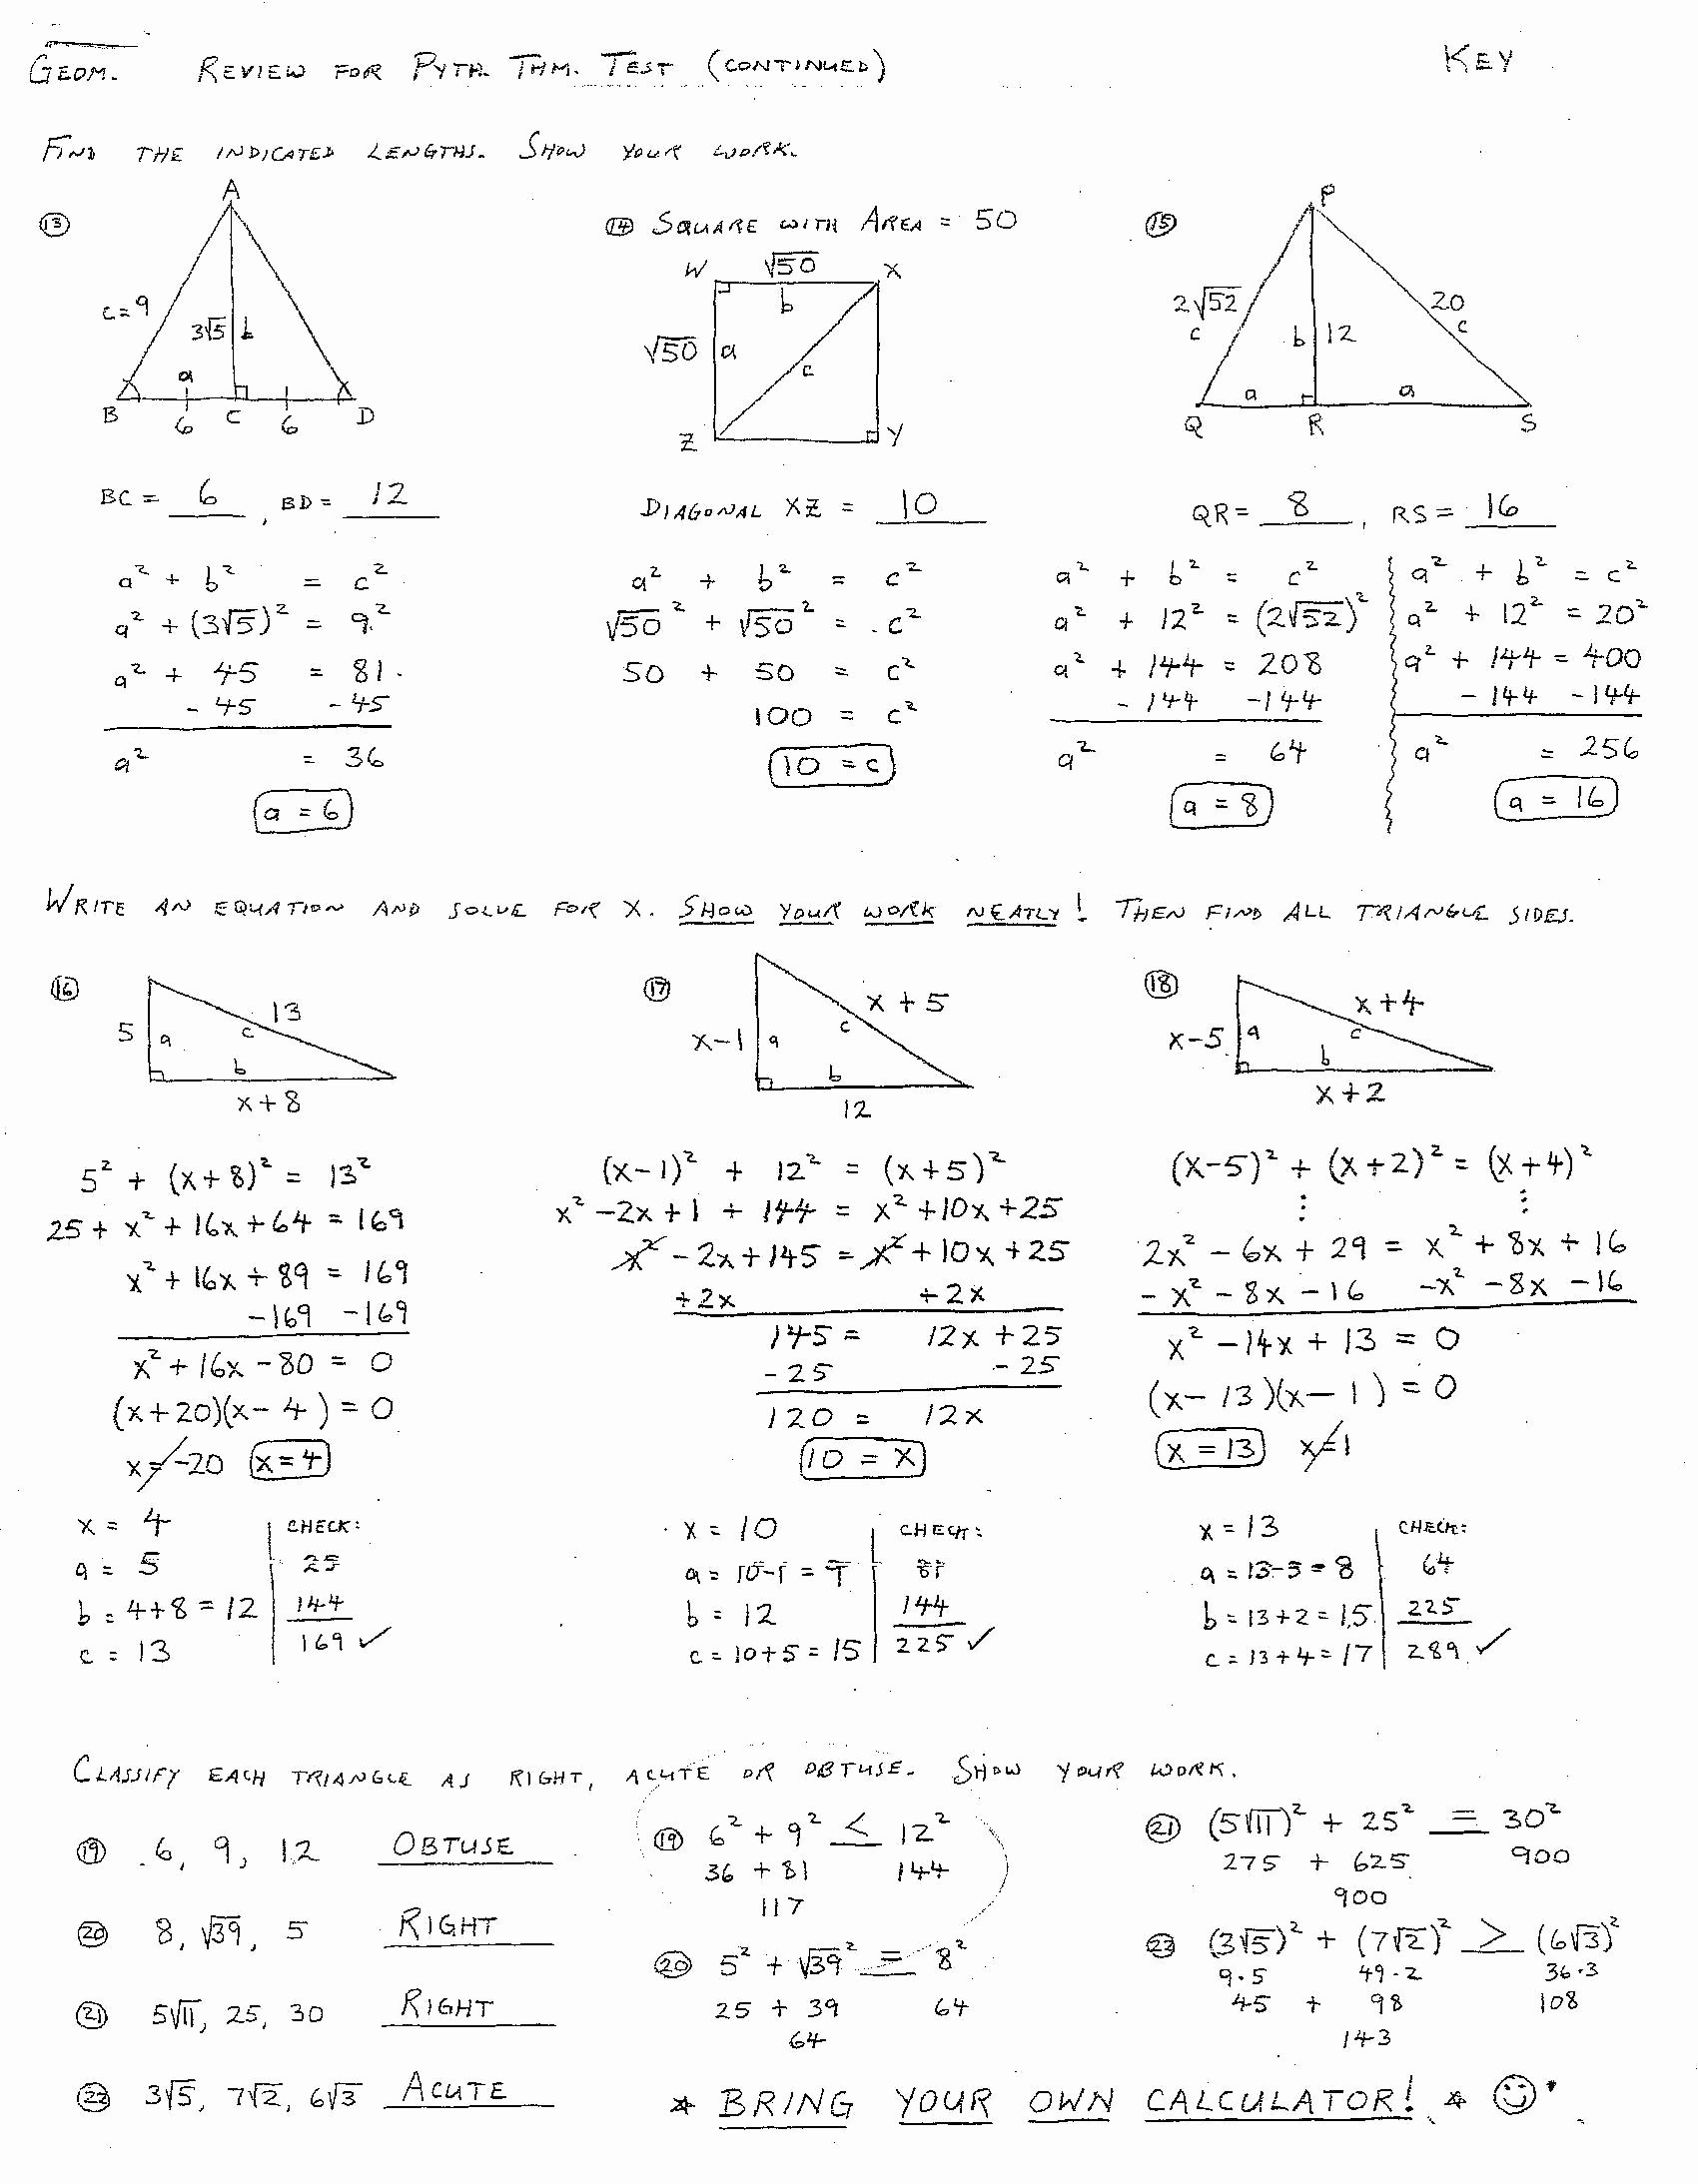 Proving Triangles Congruent Worksheet Answers Awesome Proving Triangles Congruent Worksheet Answer Key